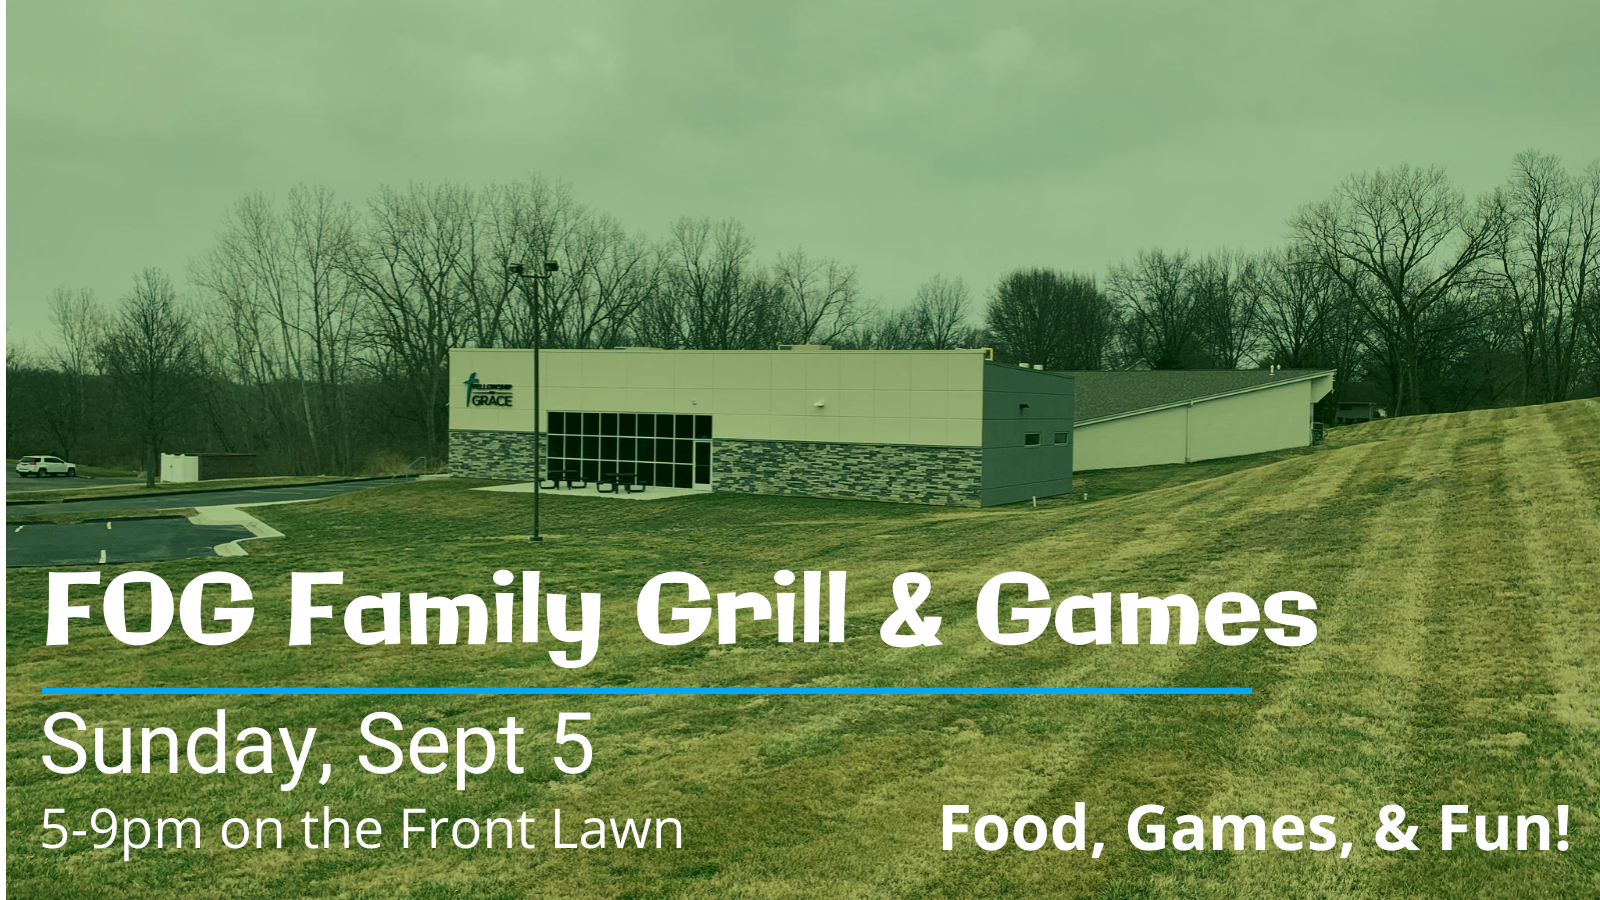 FOG-2021-PreServiceSlides-FOGFamilyGrill&Games image